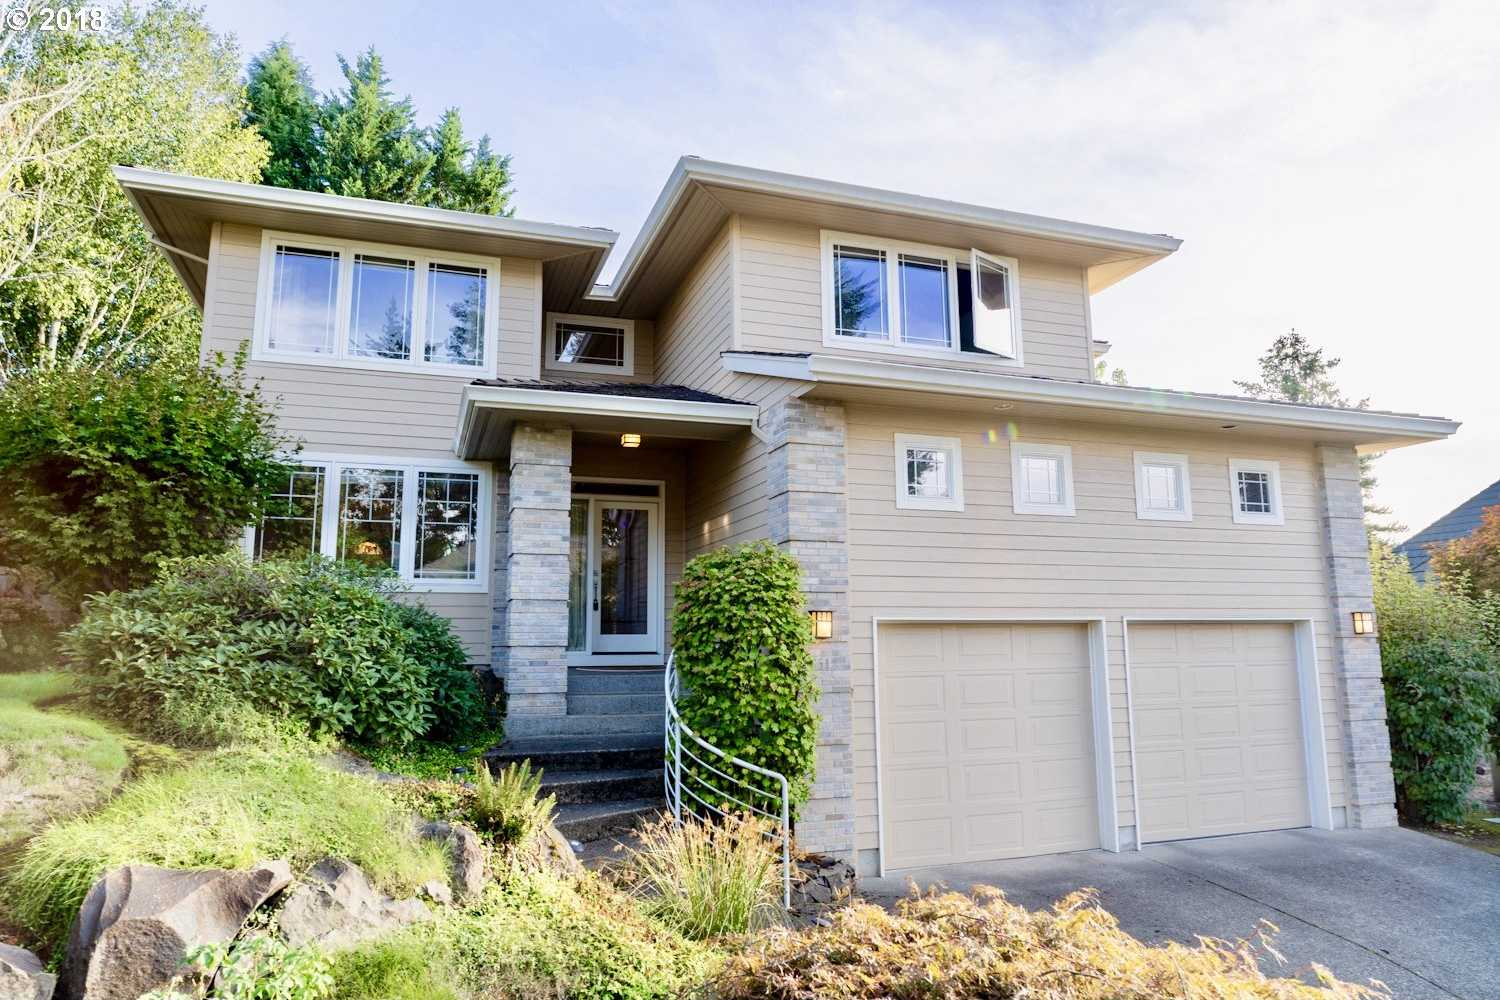 $619,900 - 5Br/3Ba -  for Sale in Thompson Highlands, Portland